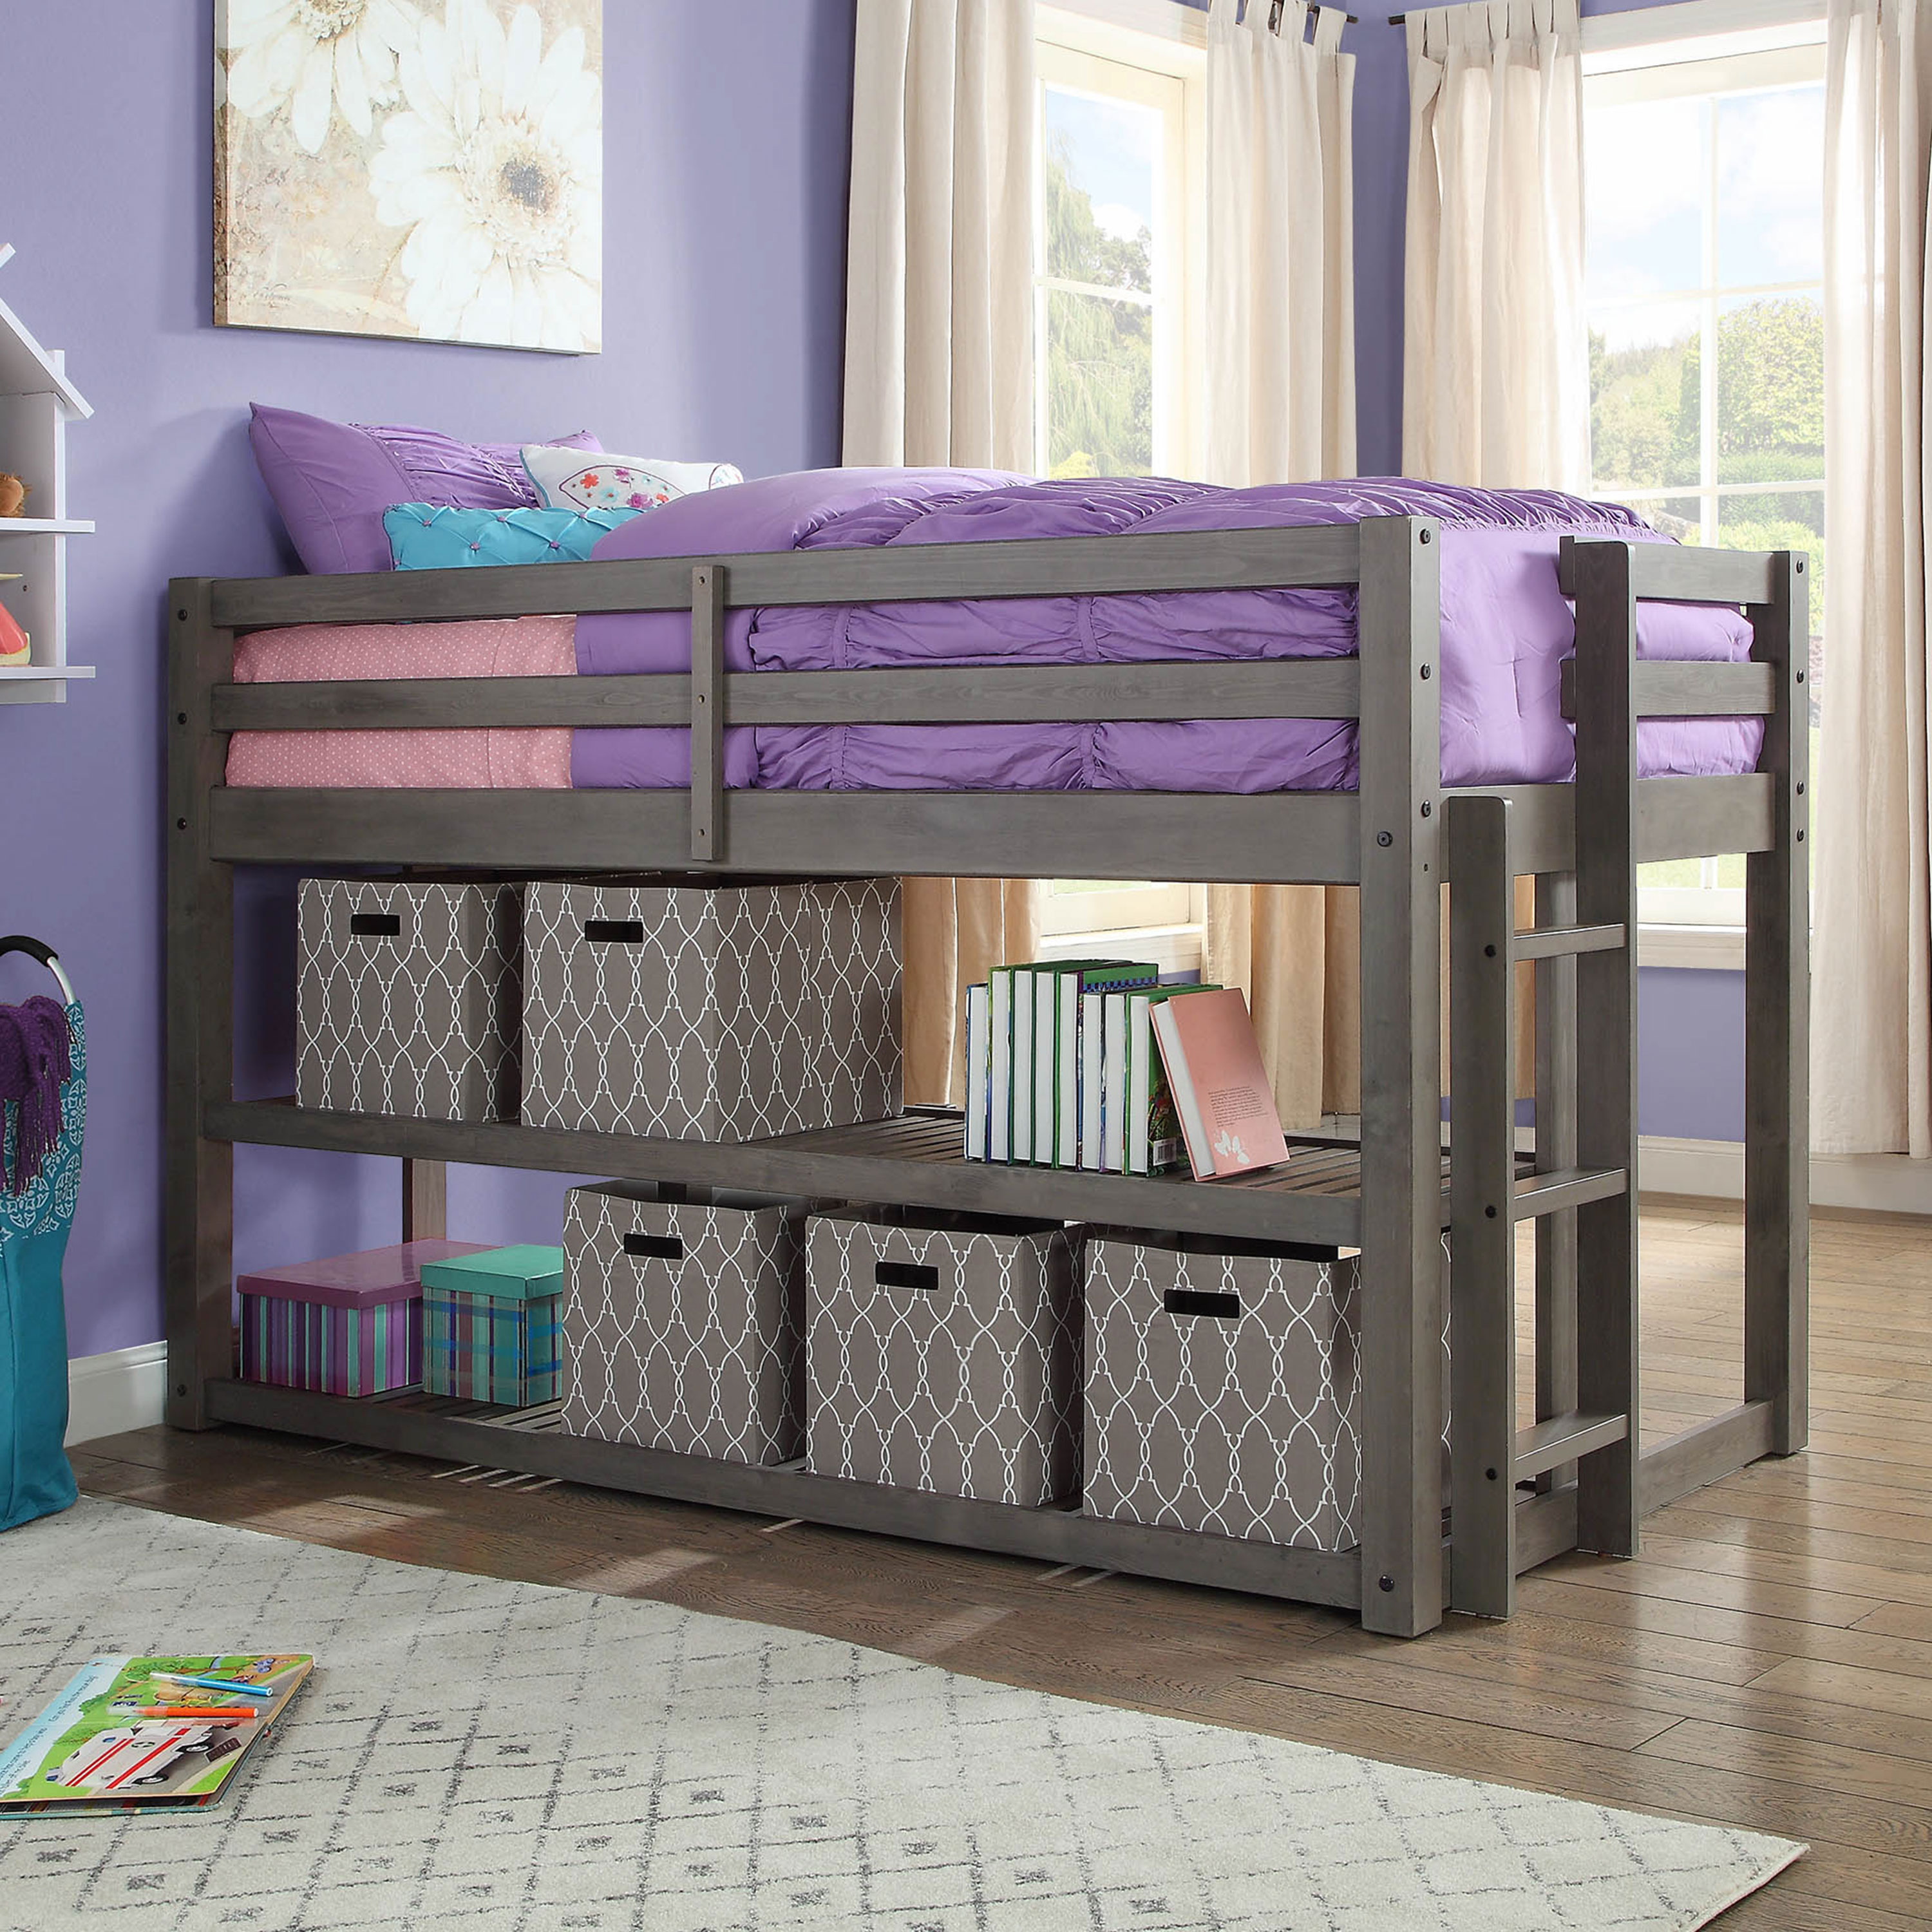 Superieur Better Homes And Gardens Loft Storage Bed With Spacious Storage Shelves,  Multiple Finishes   Walmart.com